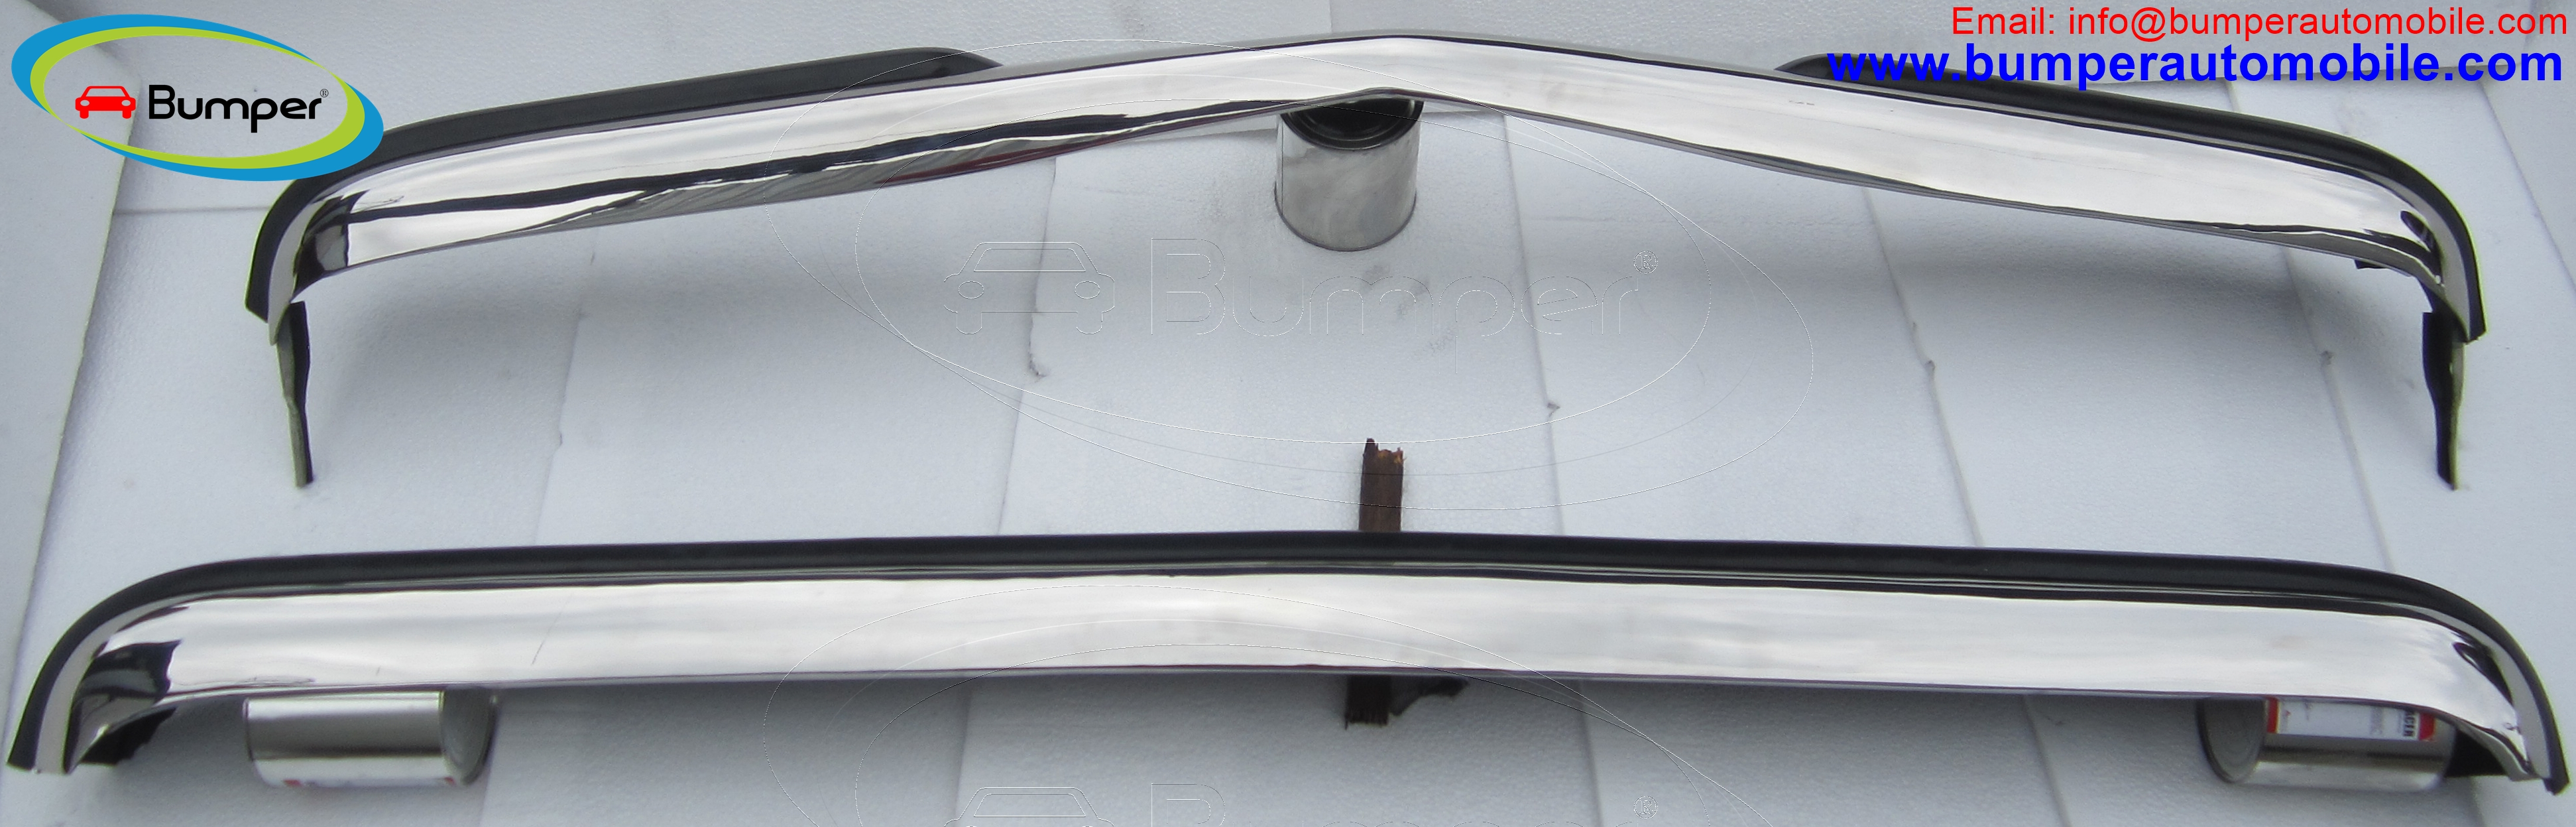 Mercedes W123 Sedan bumper ( 1976 - 1985 ) stainless steel 2